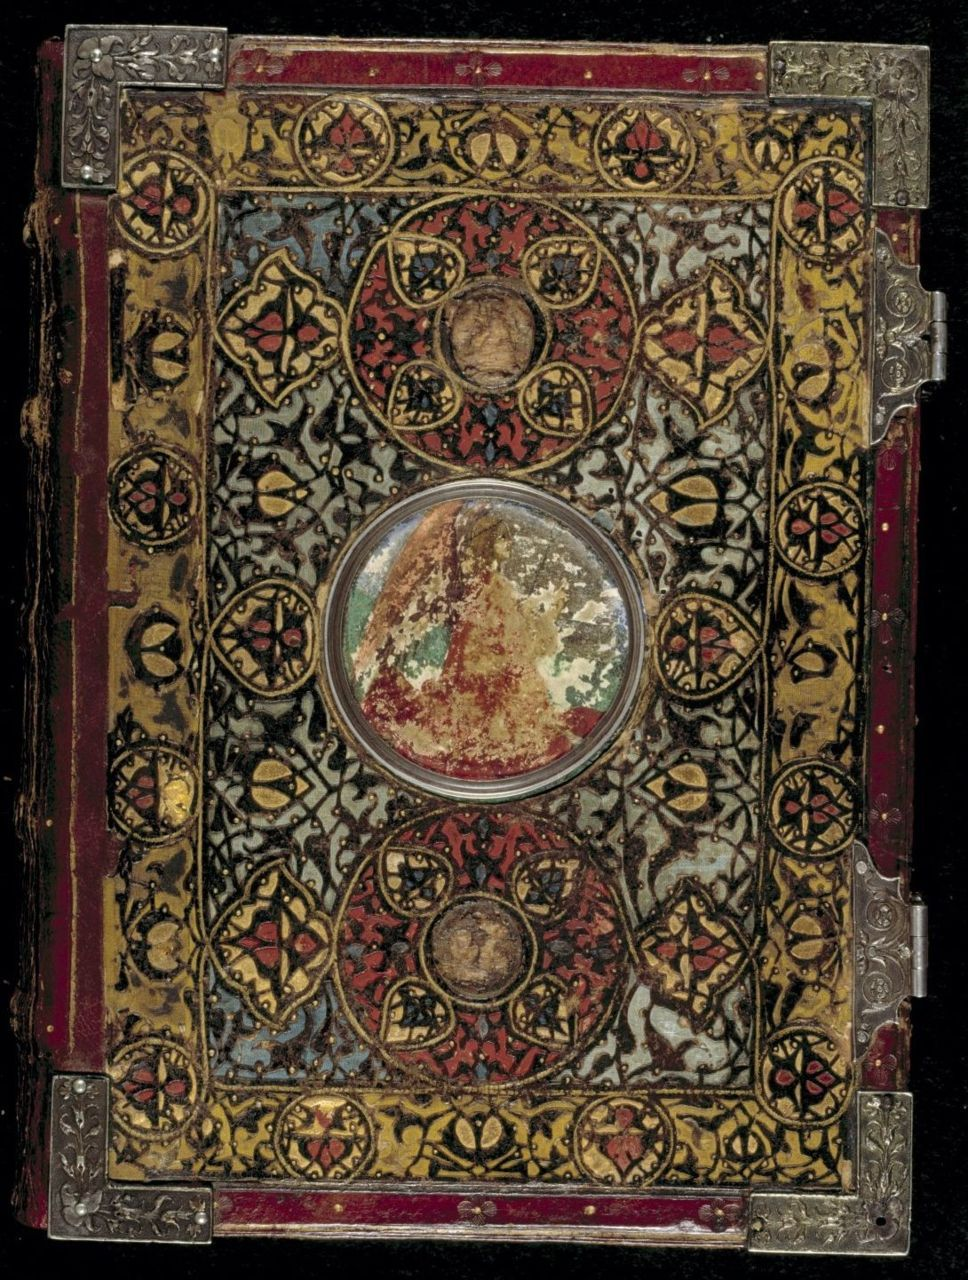 Front cover of the binding.  			 		 			 				 Italy, N. (Bologna)  Book of Hours, Use of Rome (the 'Hours of Bonaparte Ghislieri', formerly known as 'The Albani Hours') Origin Italy, N. (Bologna) 					 				 					 						Date c. 1500 					 				 					 						Language Latin				 					 				 					 						Script Humanistic Scribe Pierantonio Sallando 					 				 					 						Artists f. 15v signed by Amico Aspertini 'Amicus Bononiensis' (b. 1464, d. 1552).  1   miniature (formerly f. 132, now kept seperately as Yates Thompson 29,   f. 132) signed by Pietro de Cristoforo Vannucci, known as Perugino (b.   c. 1450, d. c. 1523). f. 74v, all historiated initials and the calendar roundels attributed to Matteo da Milano (documented 1504-1512).F. 15 attributed to Mariano del Buono (see Gazelli 1985) http://www.bl.uk/catalogues/illuminatedmanuscripts/ILLUMIN.ASP?Size=mid&IllID=31882